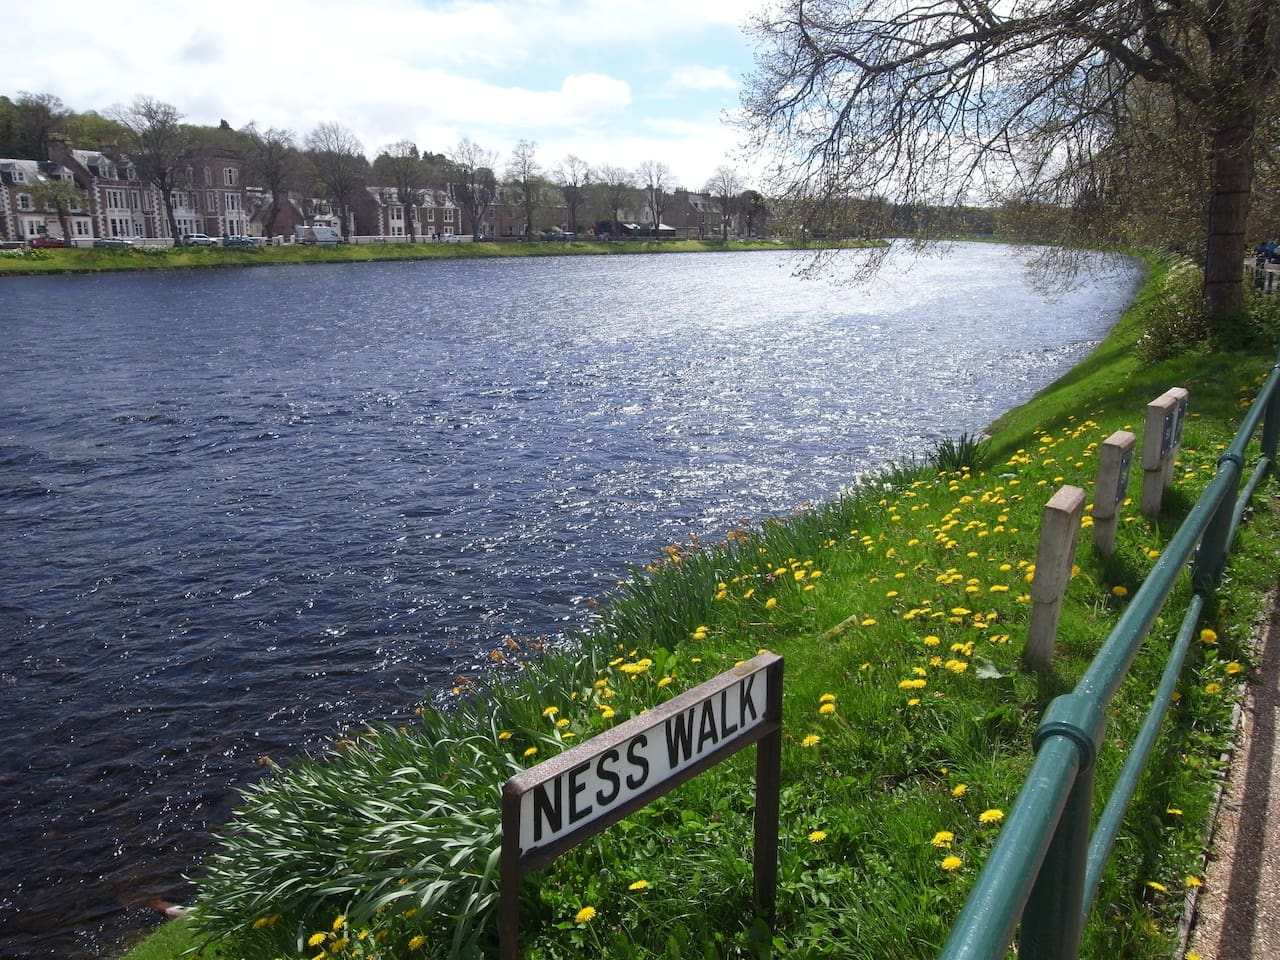 5 min walk from apartment, River Ness